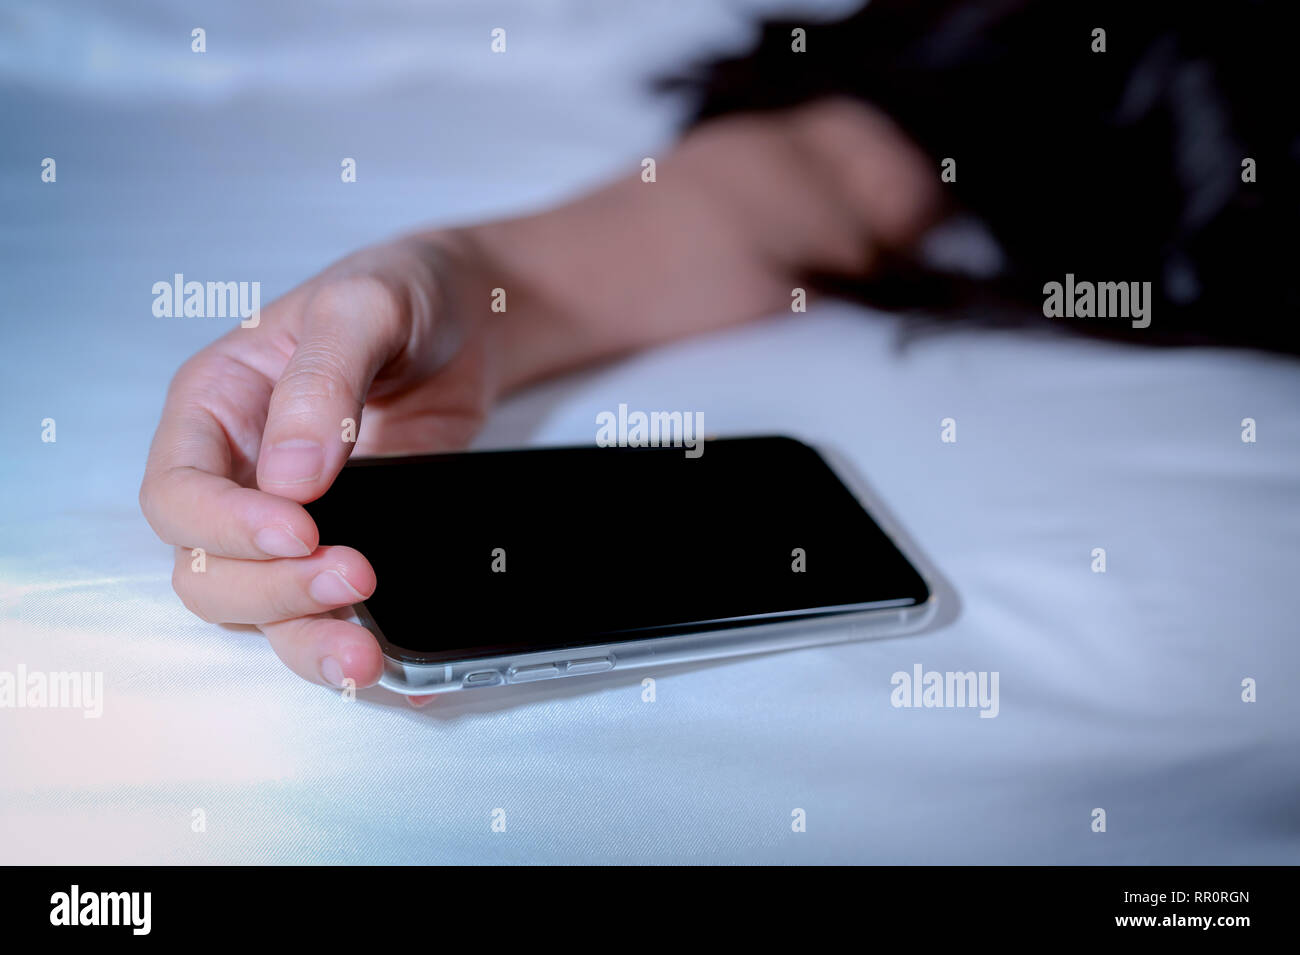 Asian woman sleeping in bed at home and hand holding mobile phone. Woman using smartphone in bedroom. Young woman addicted using smartphone. Texting o - Stock Image